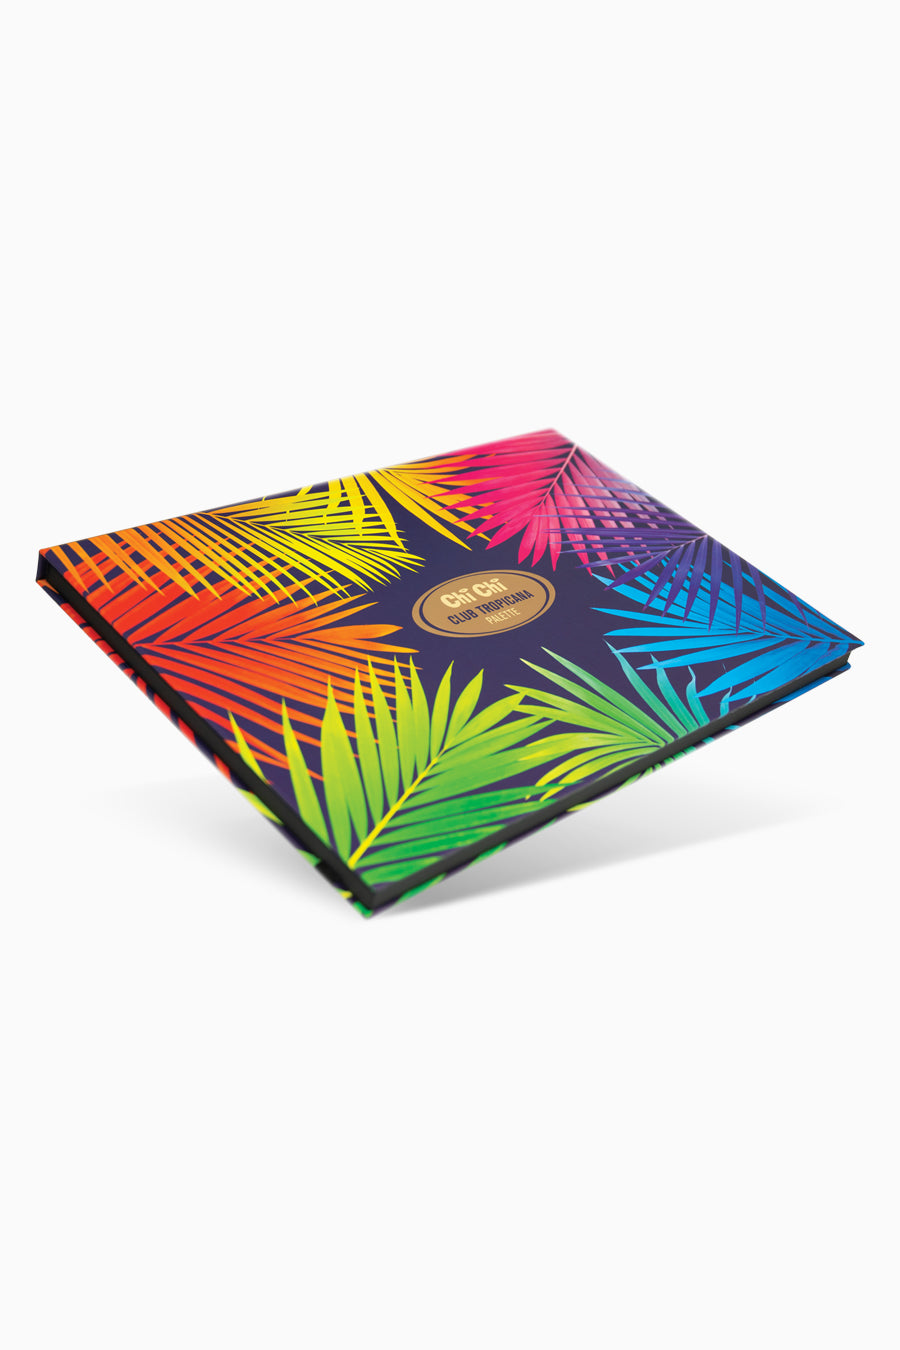 club-tropicana-palette